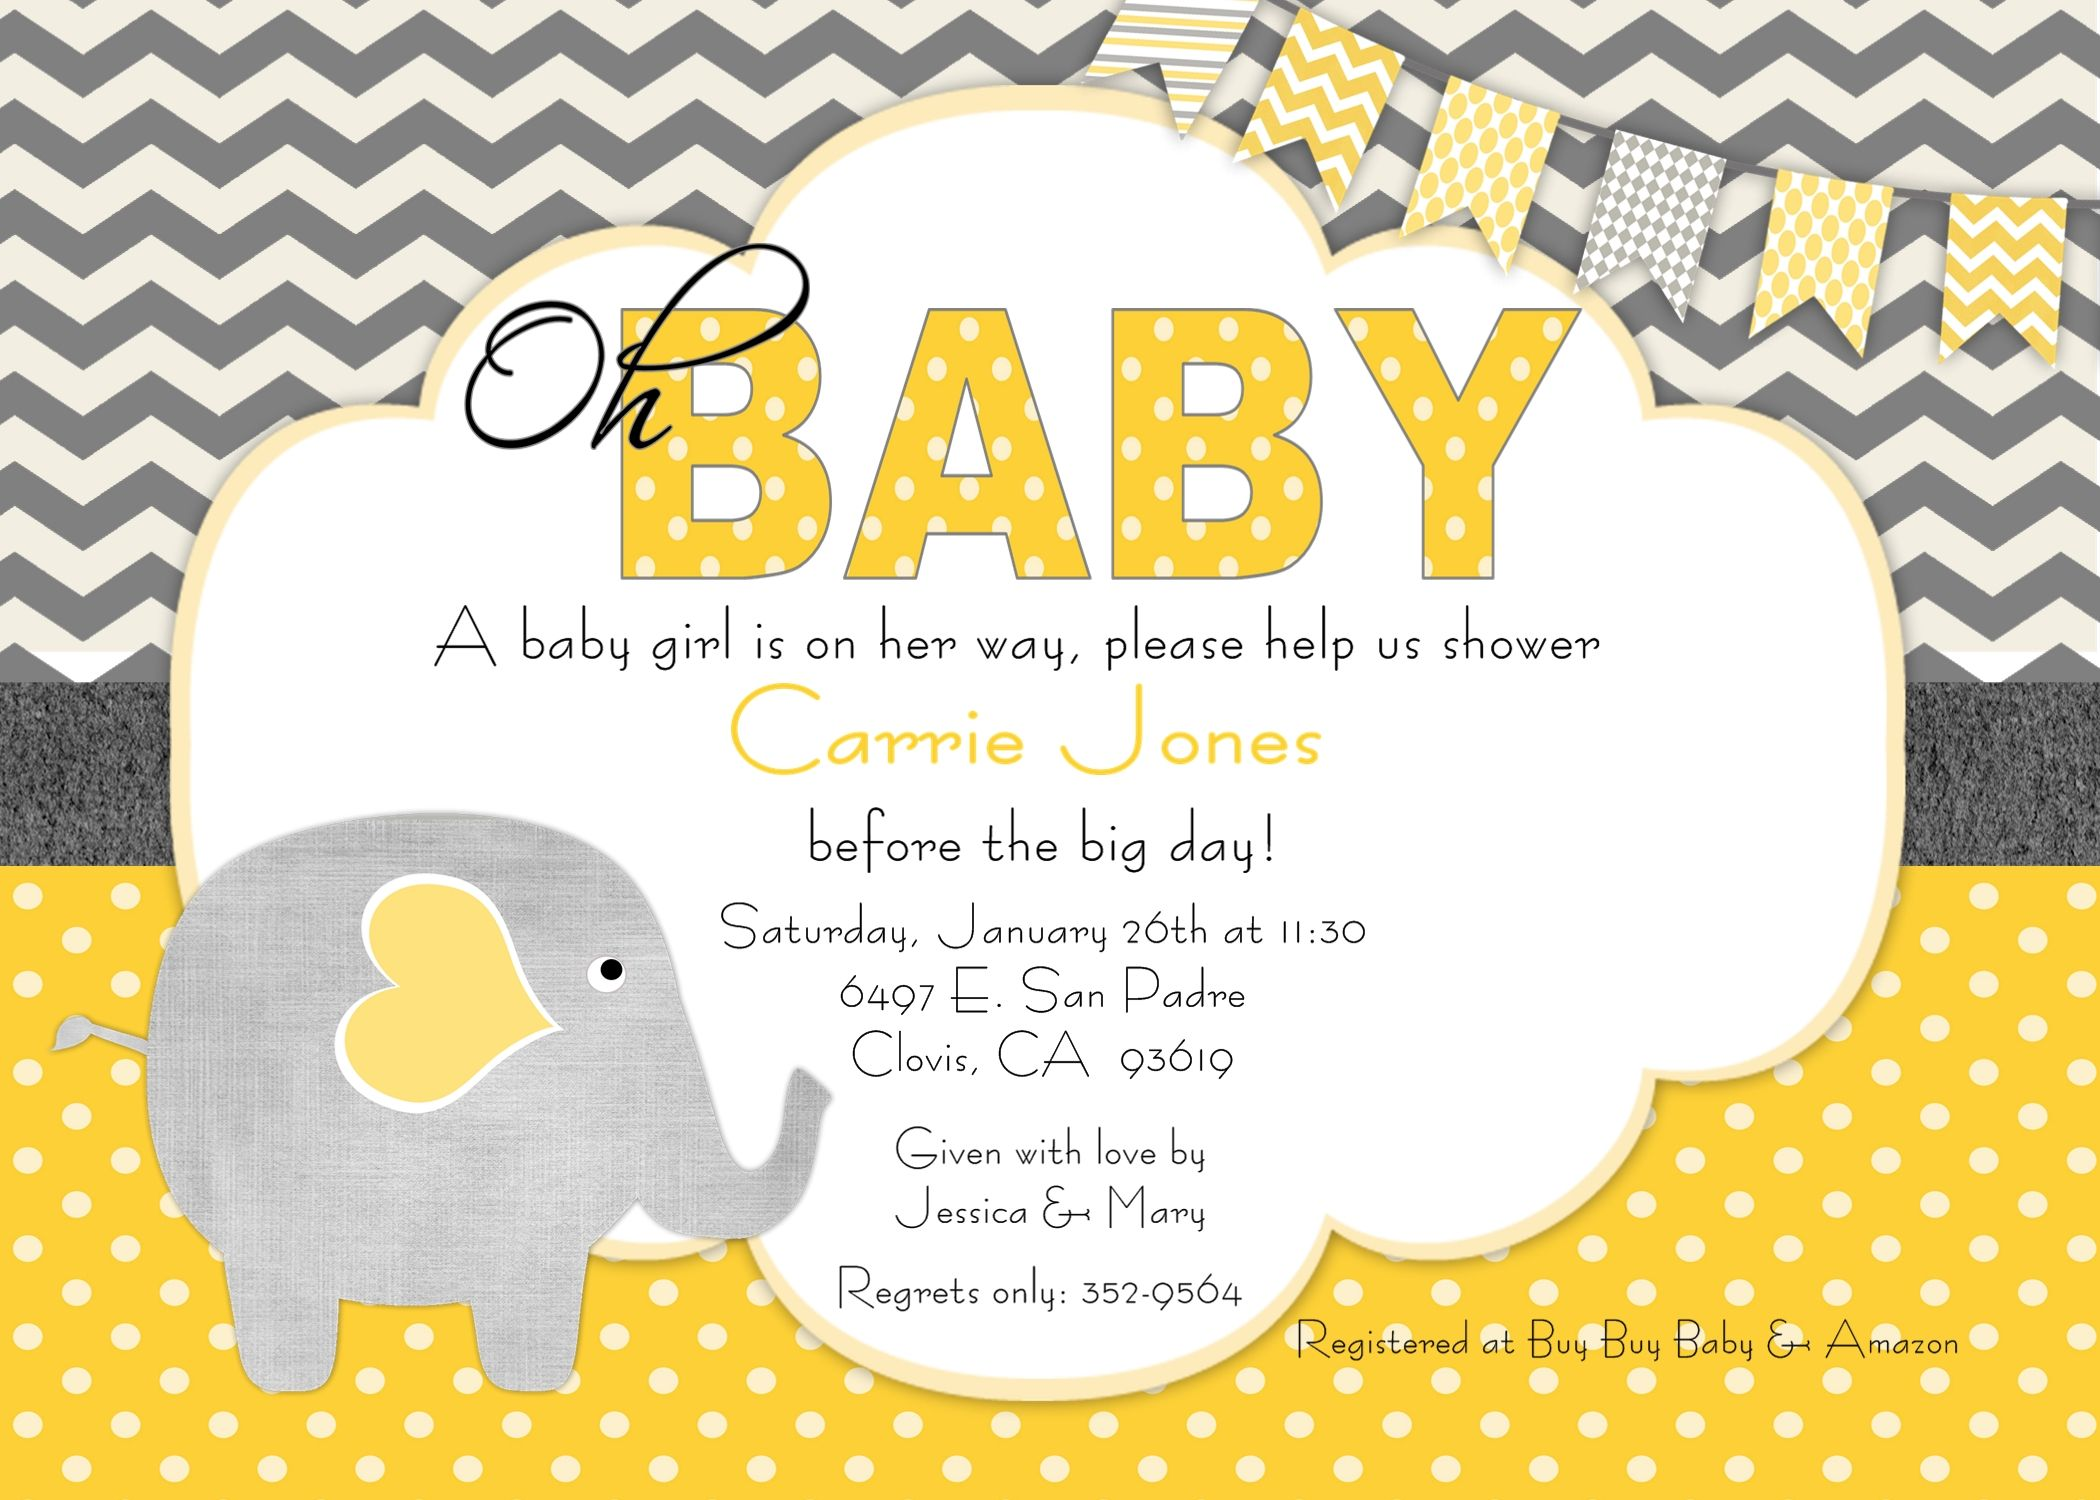 Baby Shower Invitations | 21st - Bridal World - Wedding Lists and ...